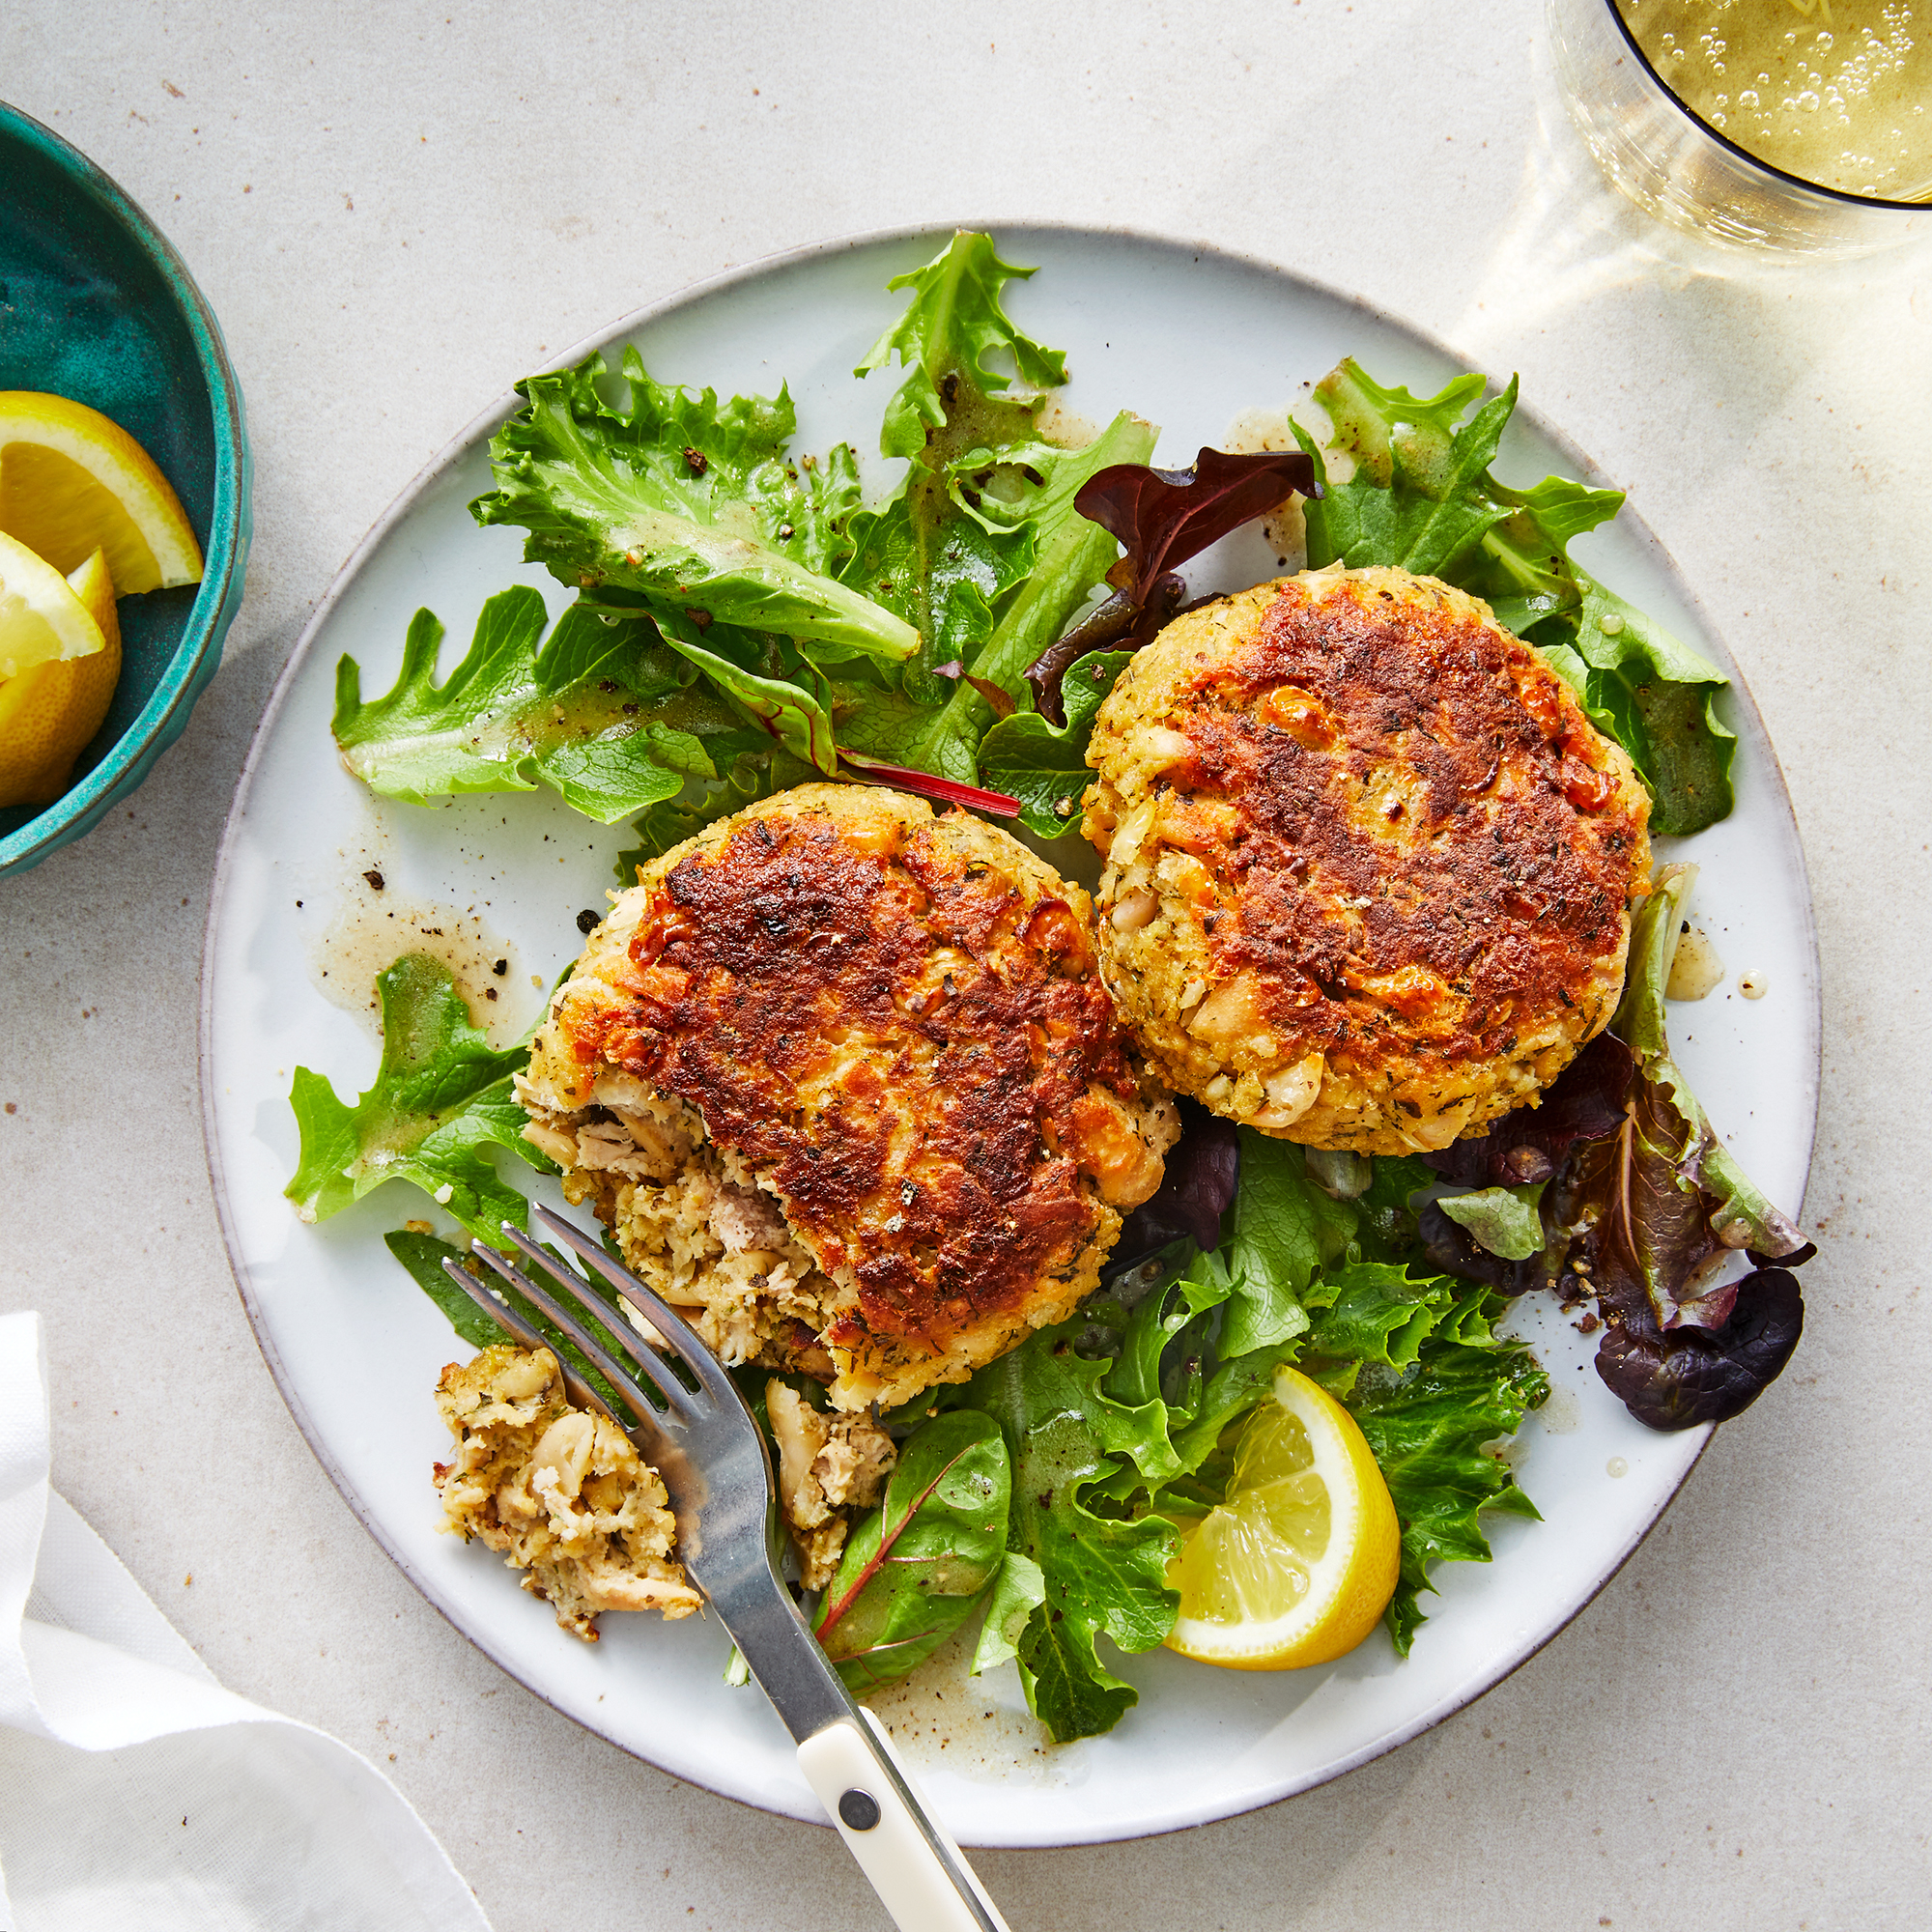 Easy Herby Tuna Cakes over Greens